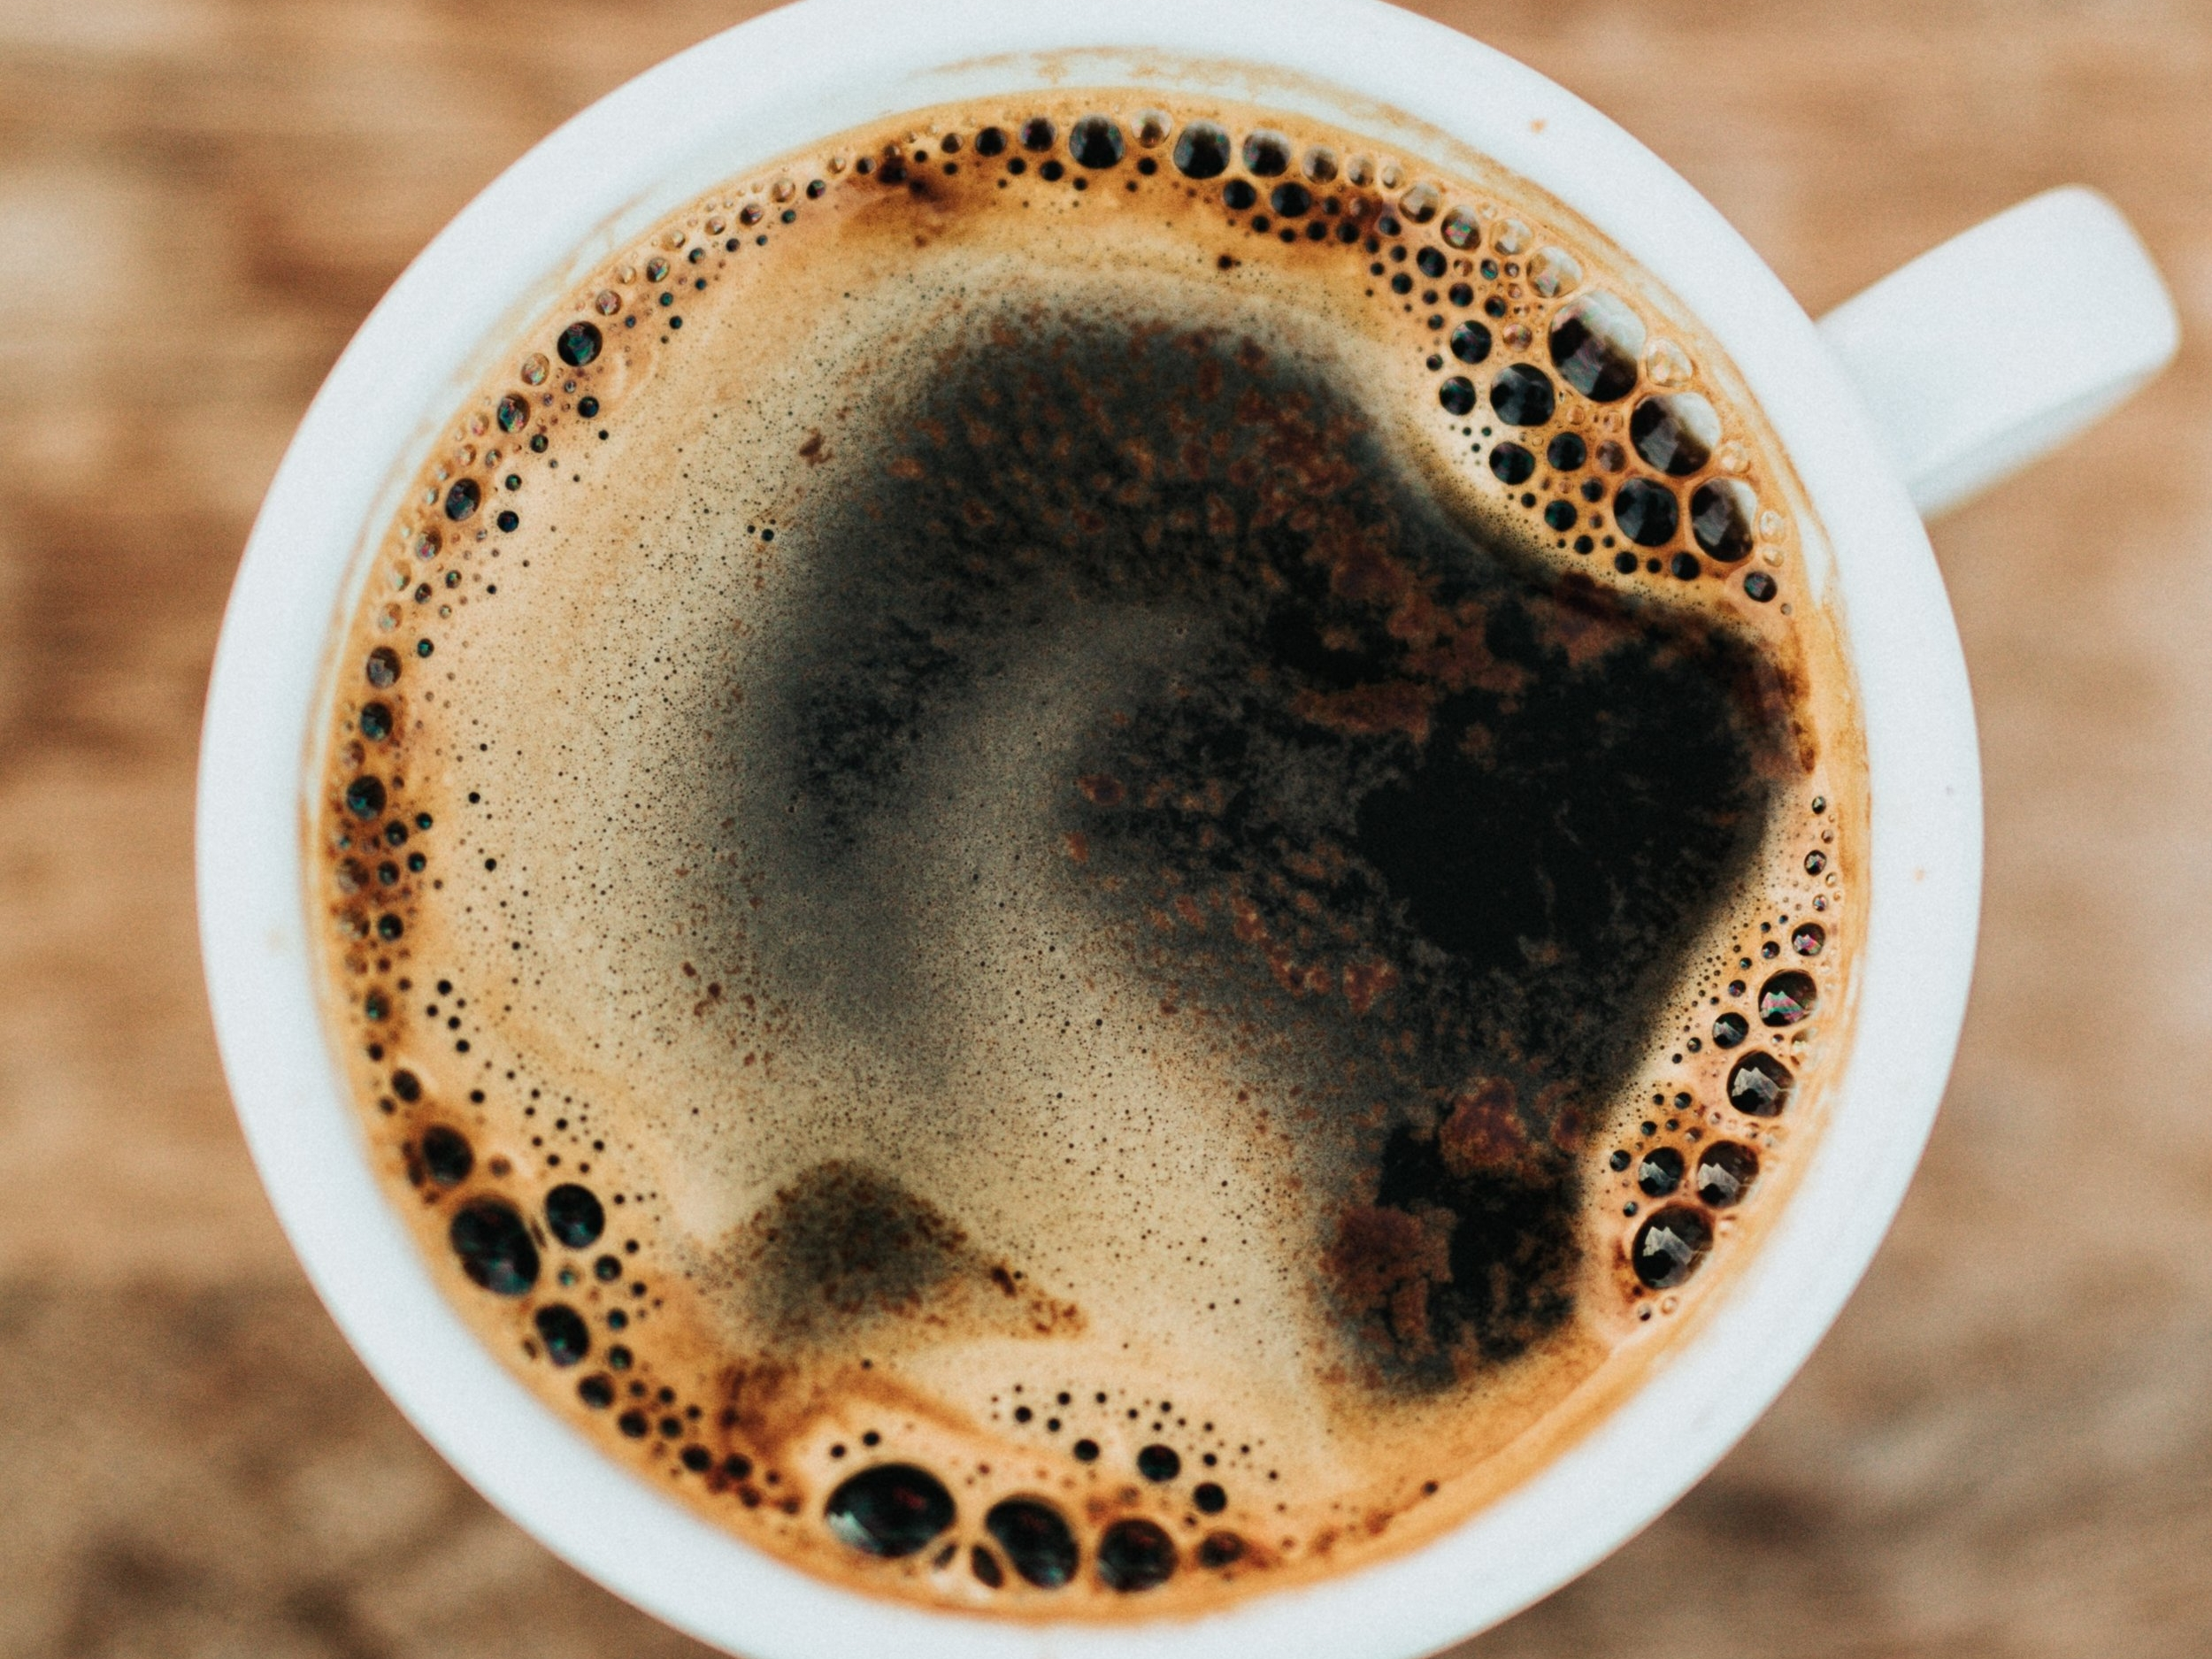 GREAT COFFEE - Mornings are hard, we know. That's why you can grab a free, freshly brewed cup of Lacas coffee every Sunday on your way in to service.